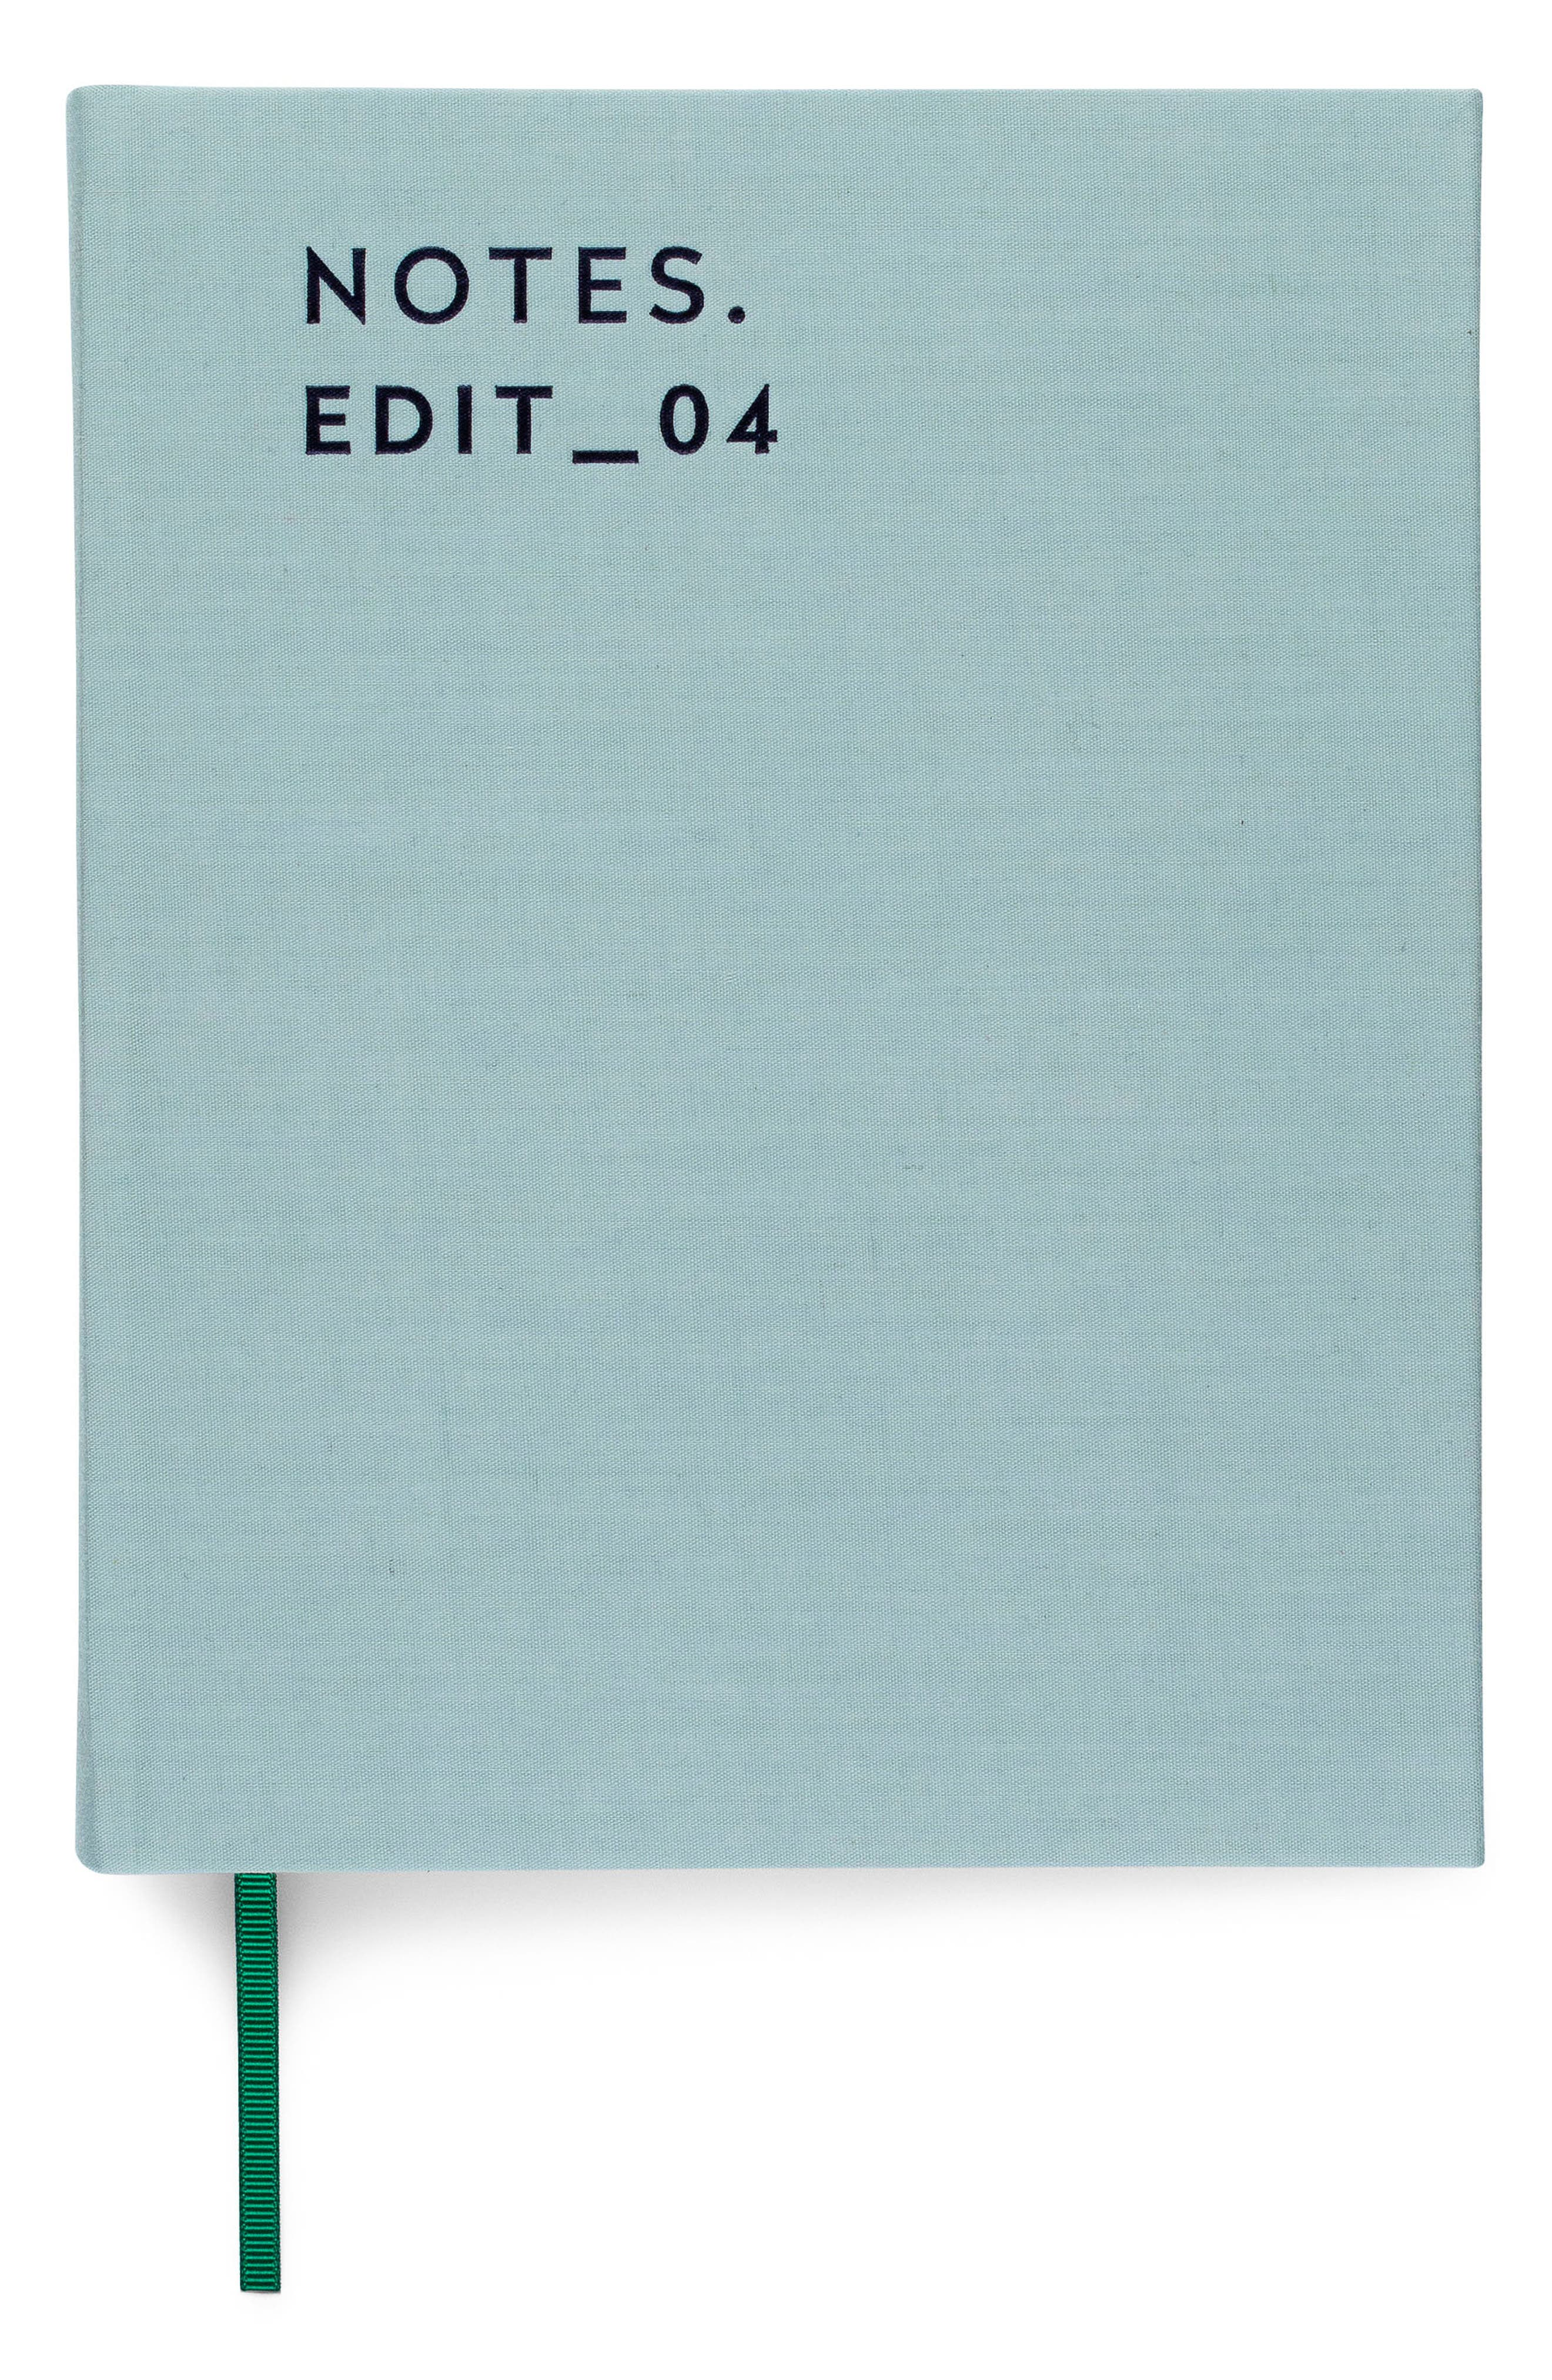 Notes Fabric Bound Journal,                         Main,                         color, 300